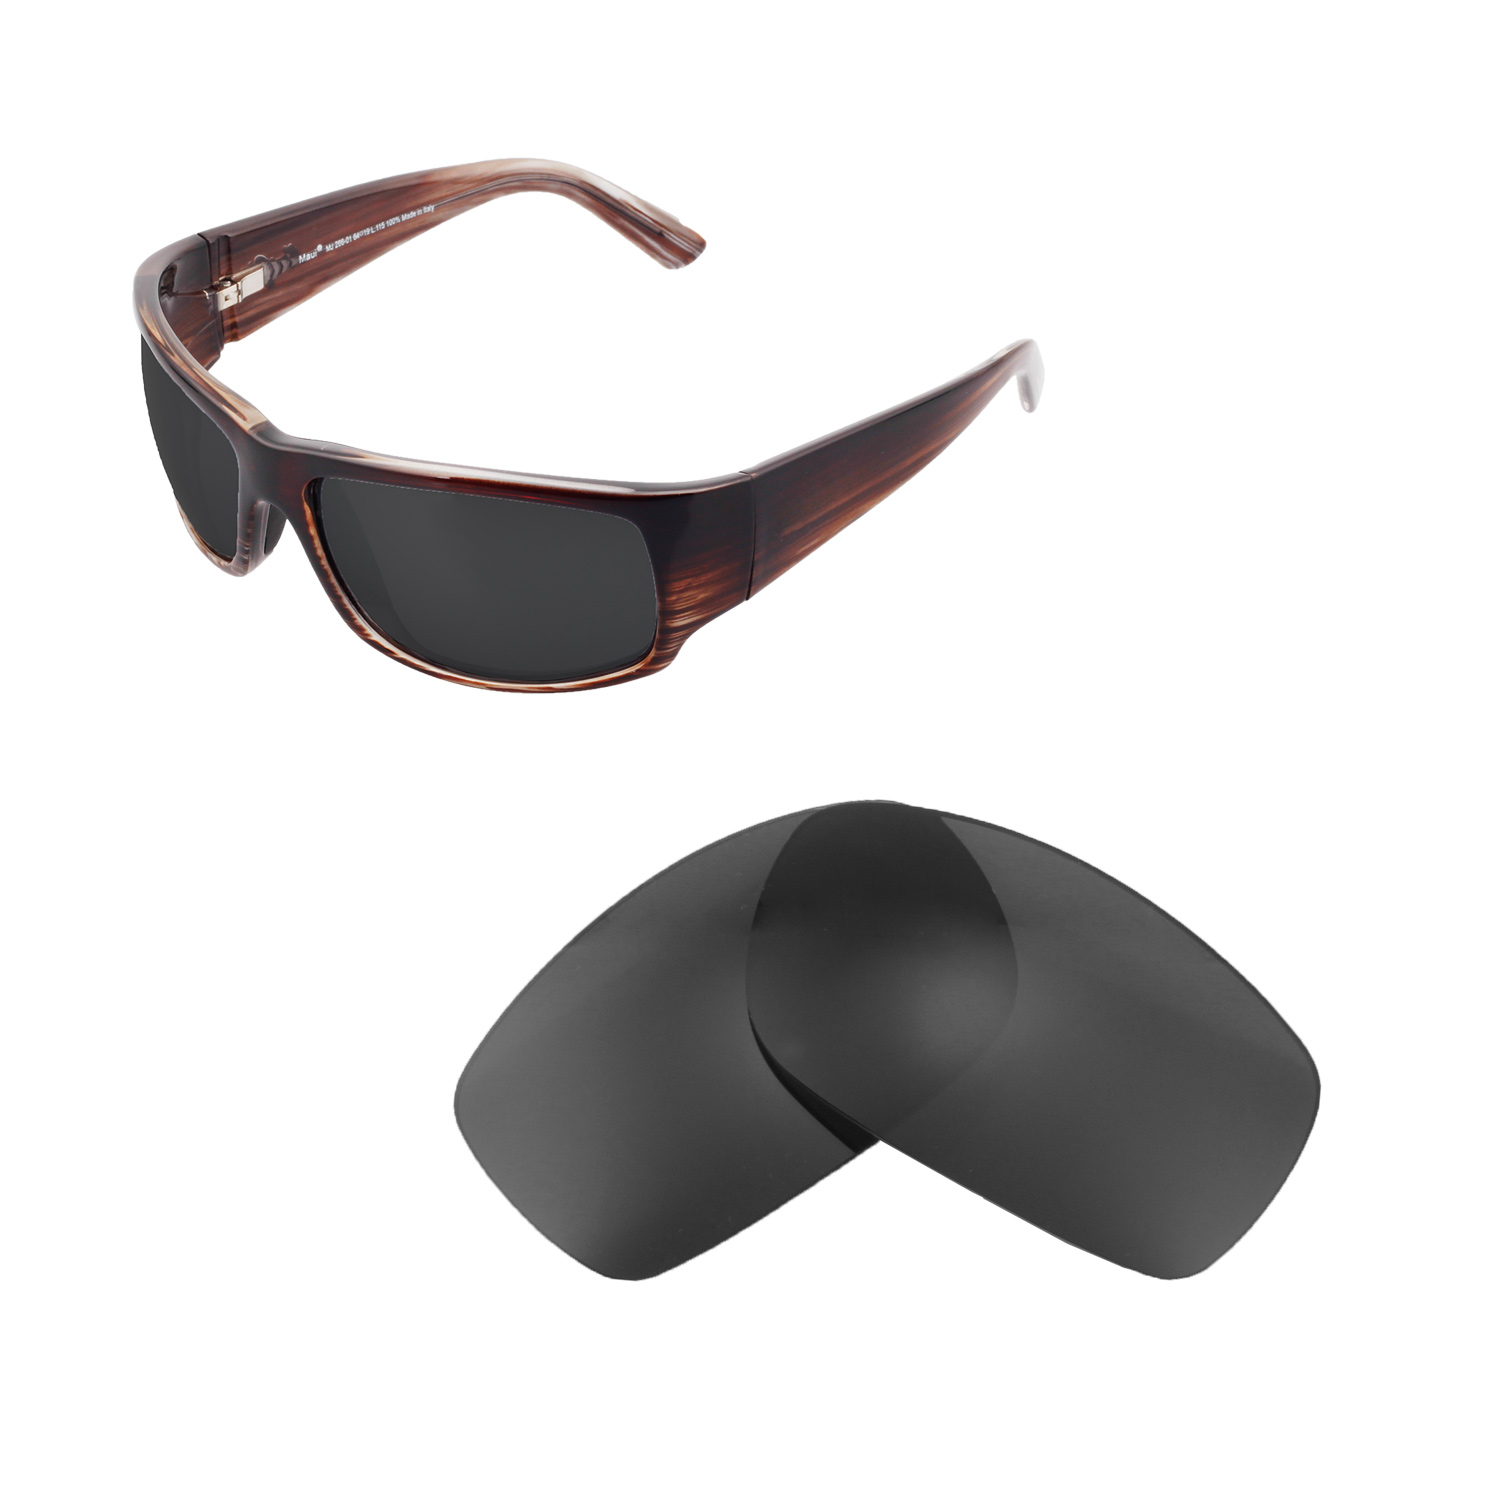 d095ea2befa Details about Walleva Replacement Lenses for Maui Jim World Cup Sunglasses-Multiple  Options